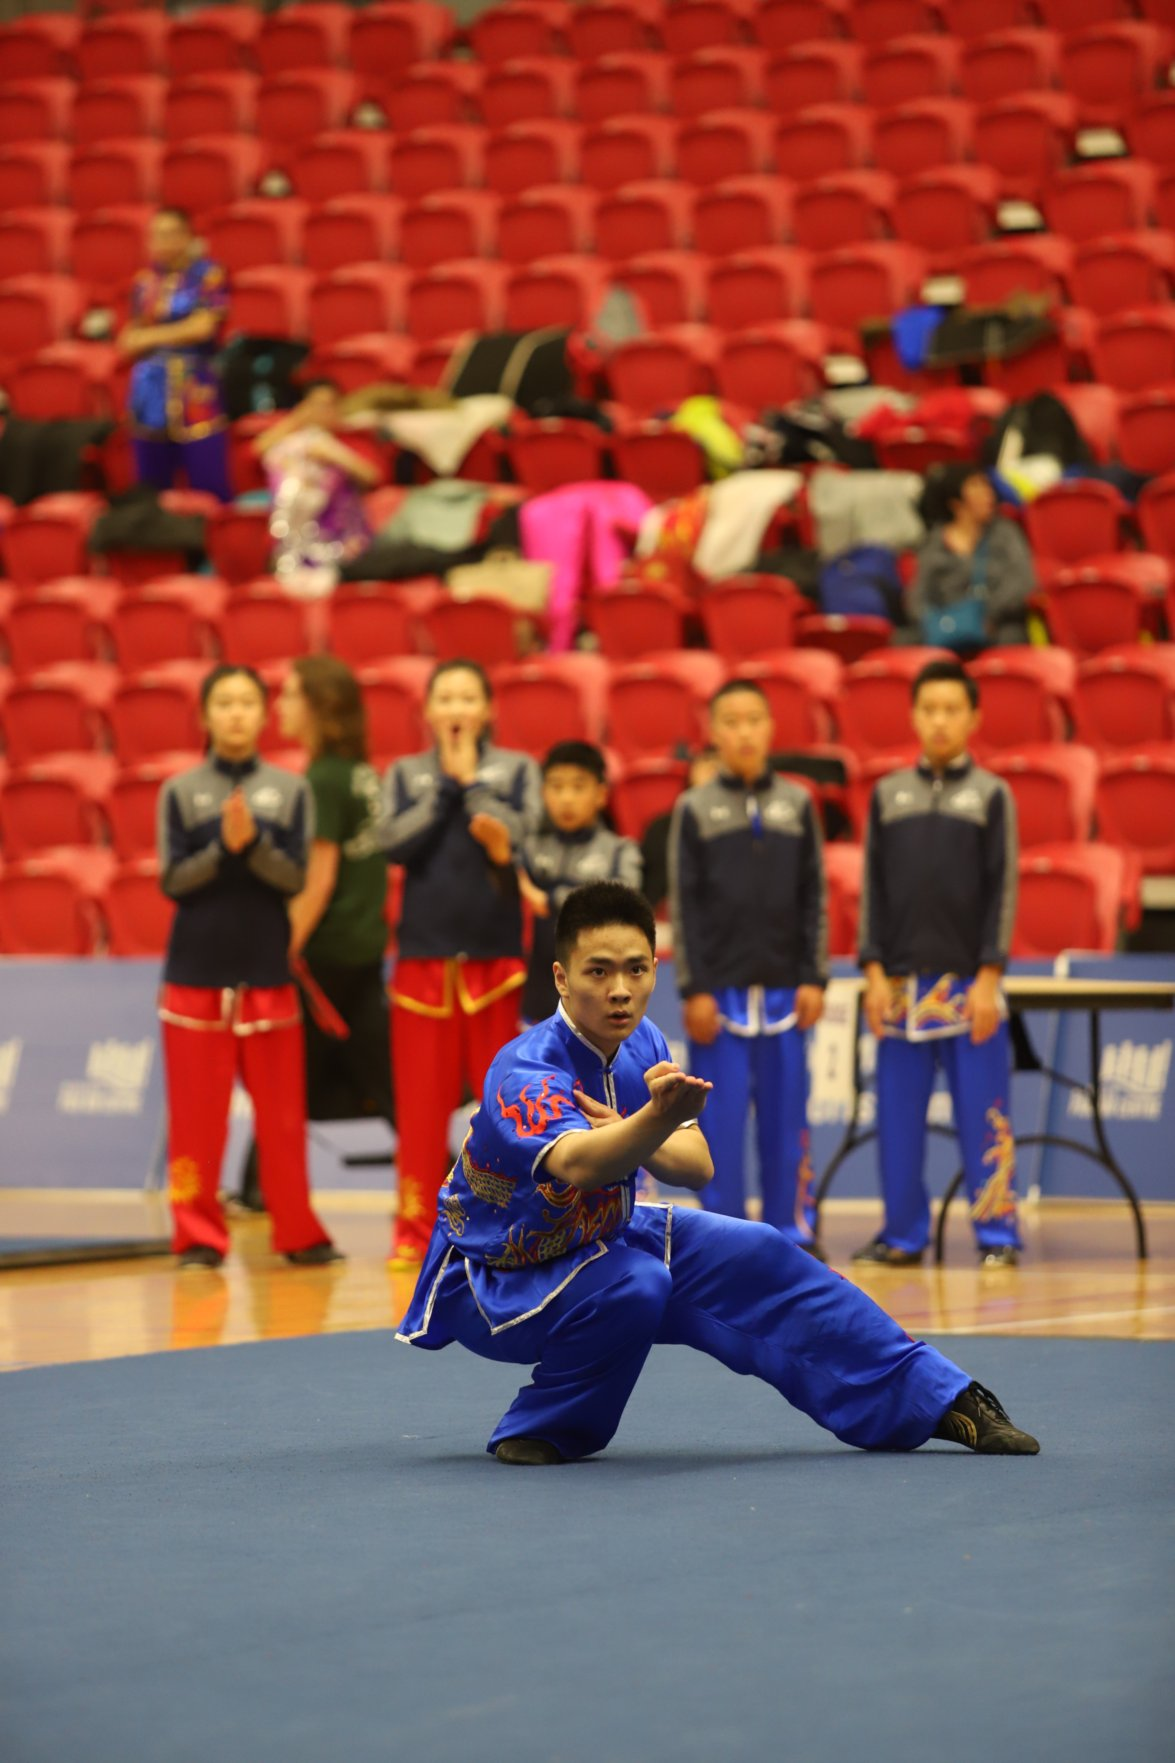 CANADIAN NATIONAL WUSHU CHAMPIONSHIPS - 42 medals awarded to 18 High Performance athletes